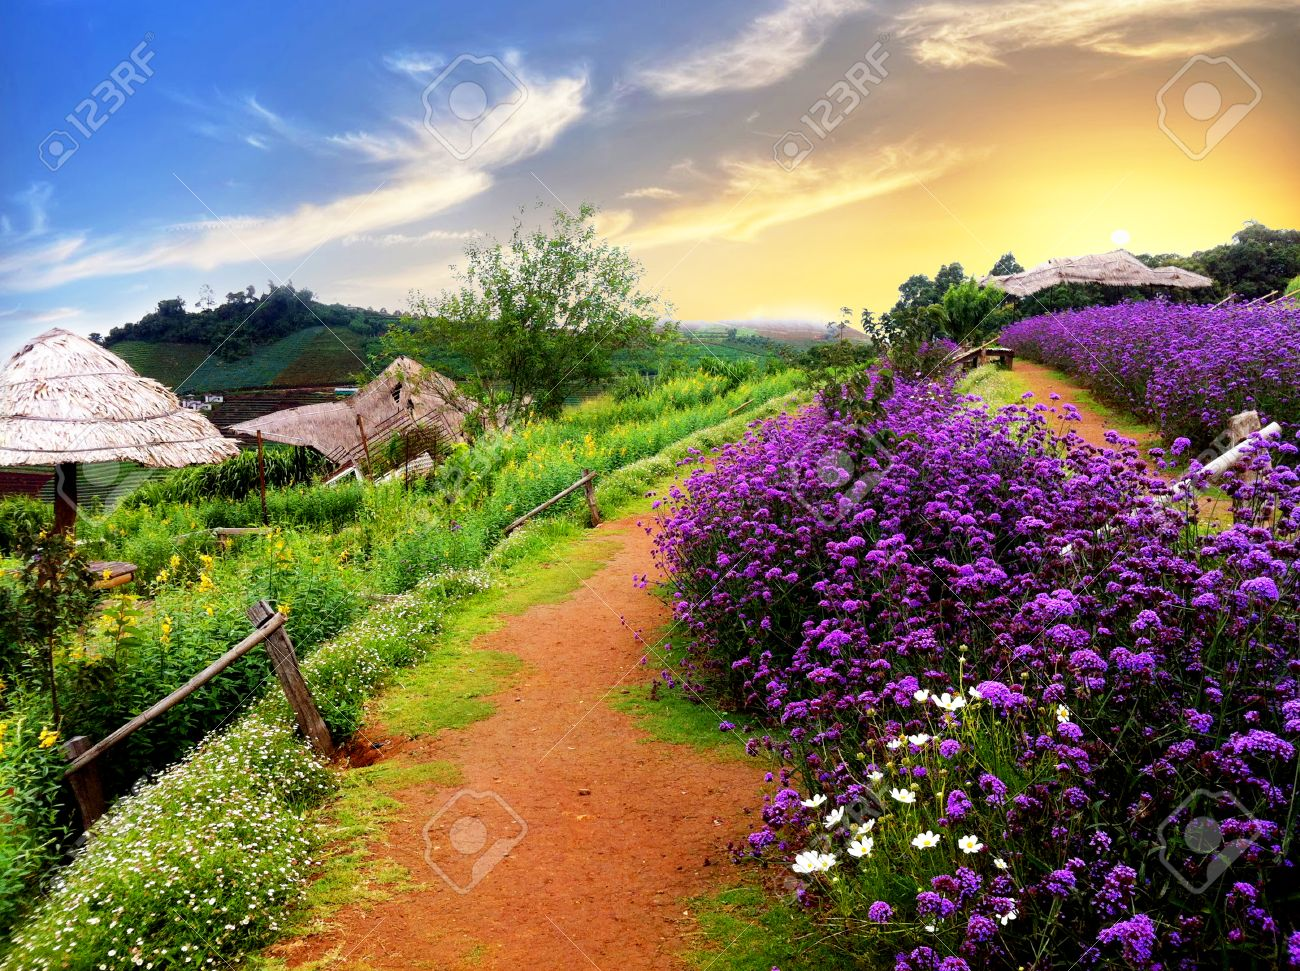 beautiful beautiful scenery pictures flowers images